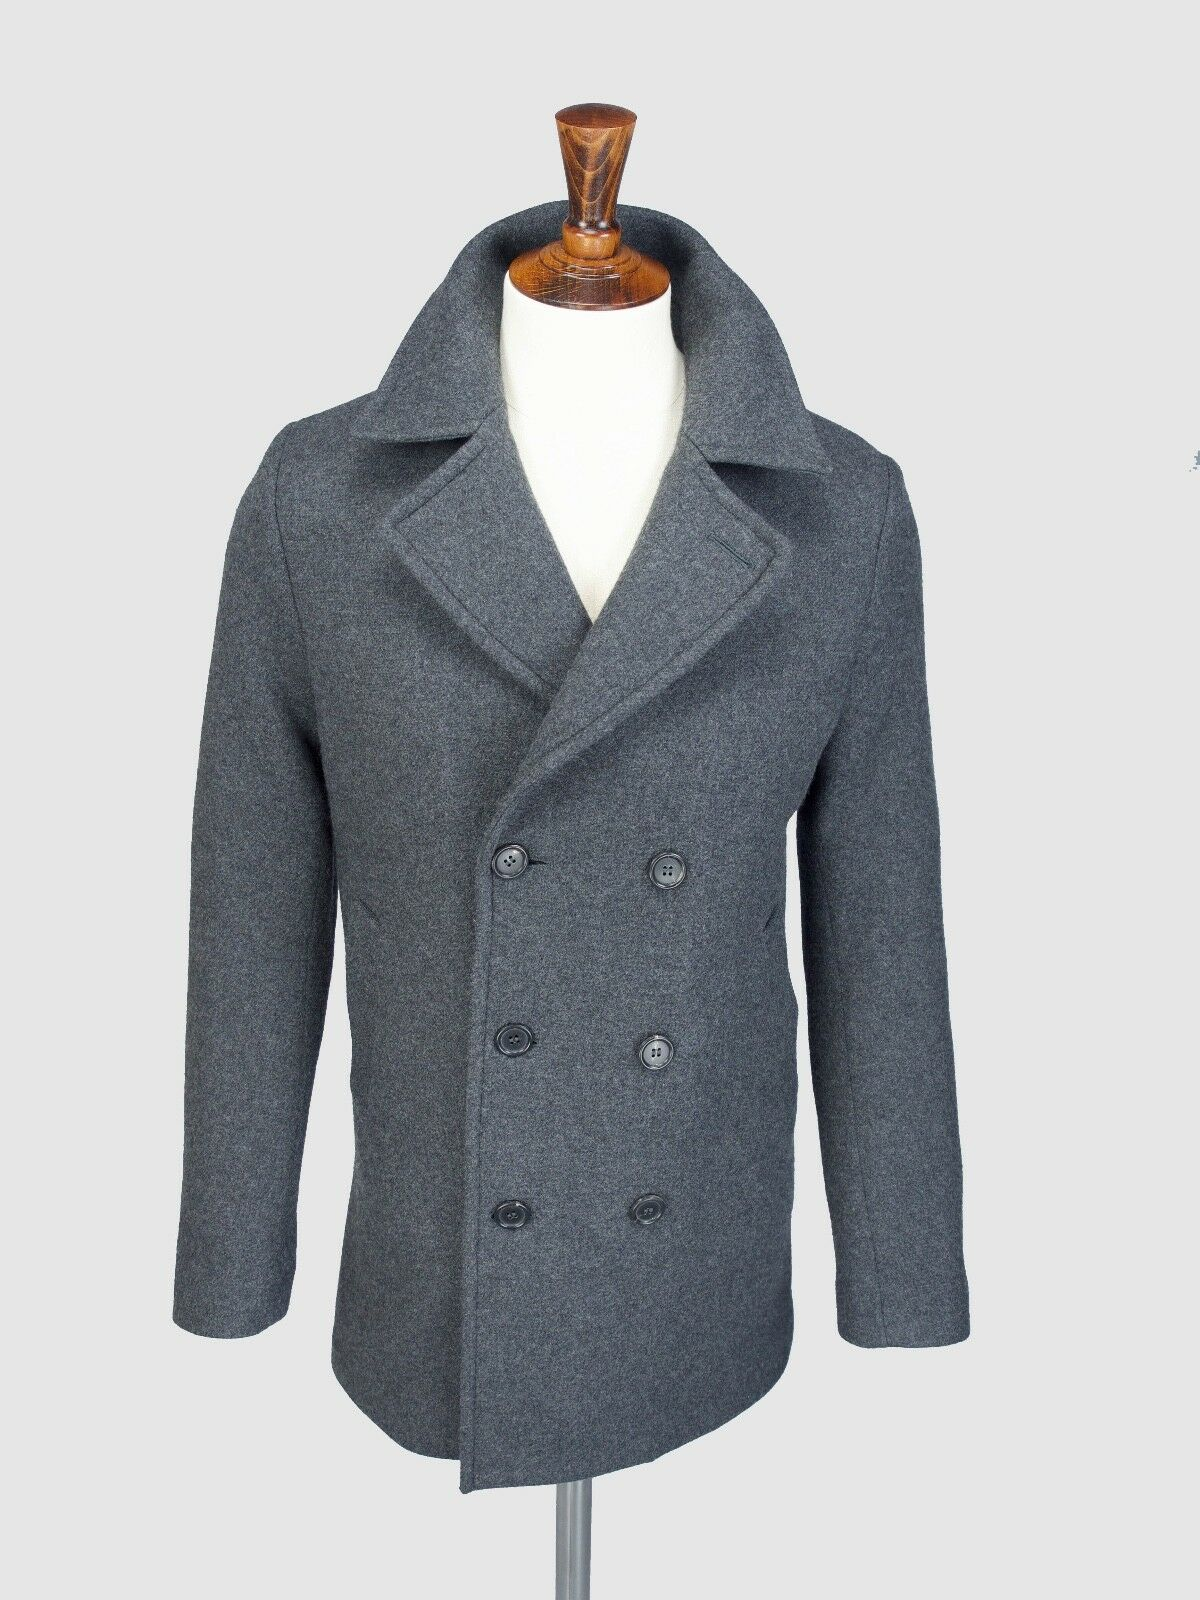 Private Weiß VC V.C Wool Cashmere Pea Coat, Größe 5 (L), New With Tags